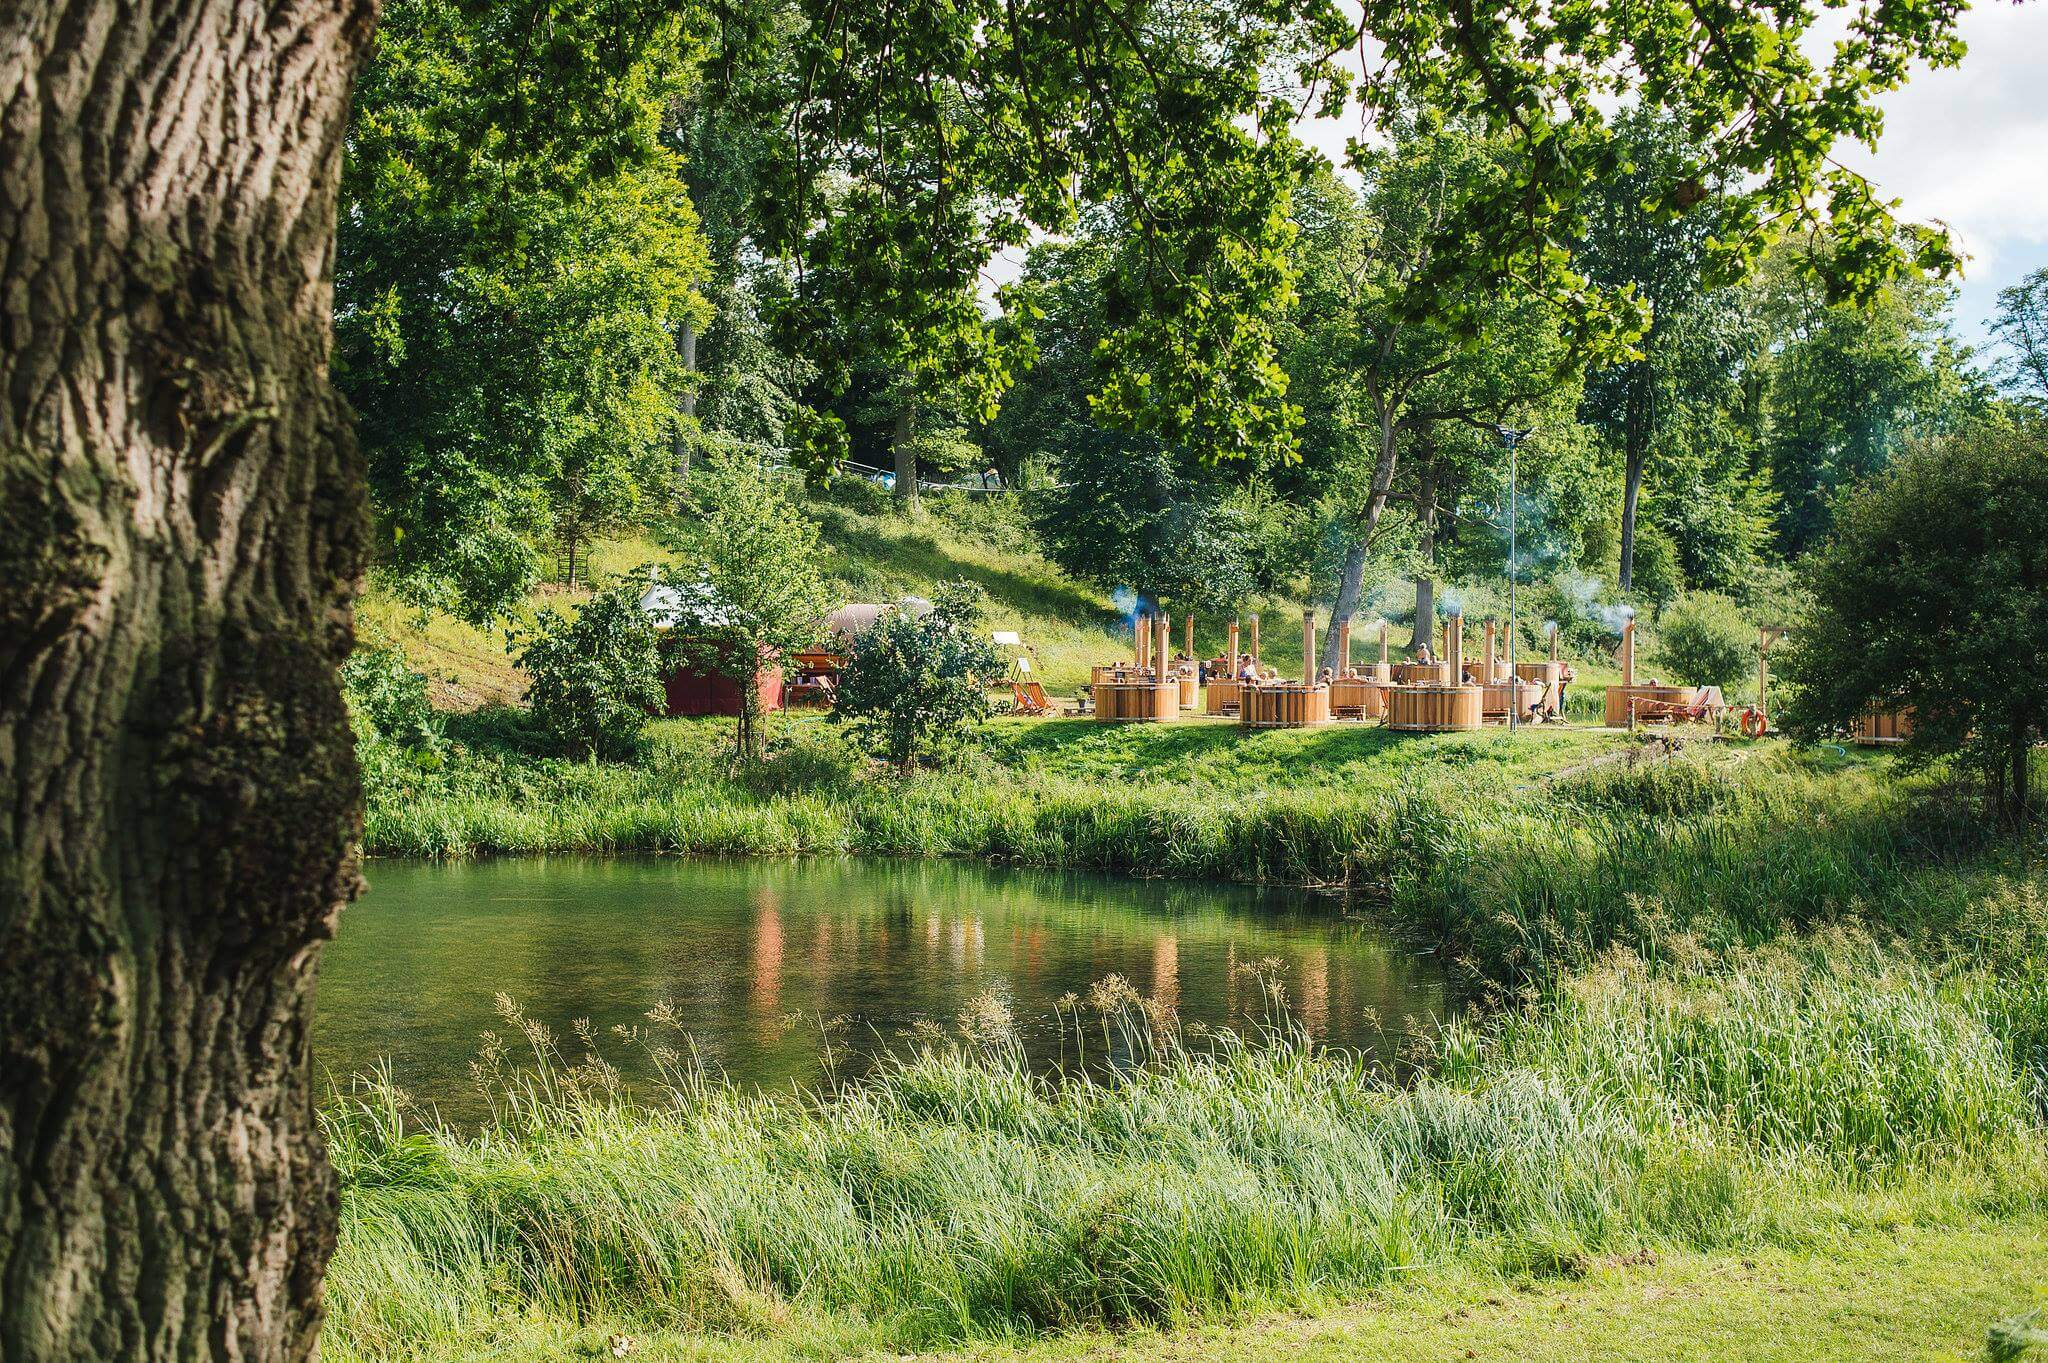 Things to do at Wilderness Festival